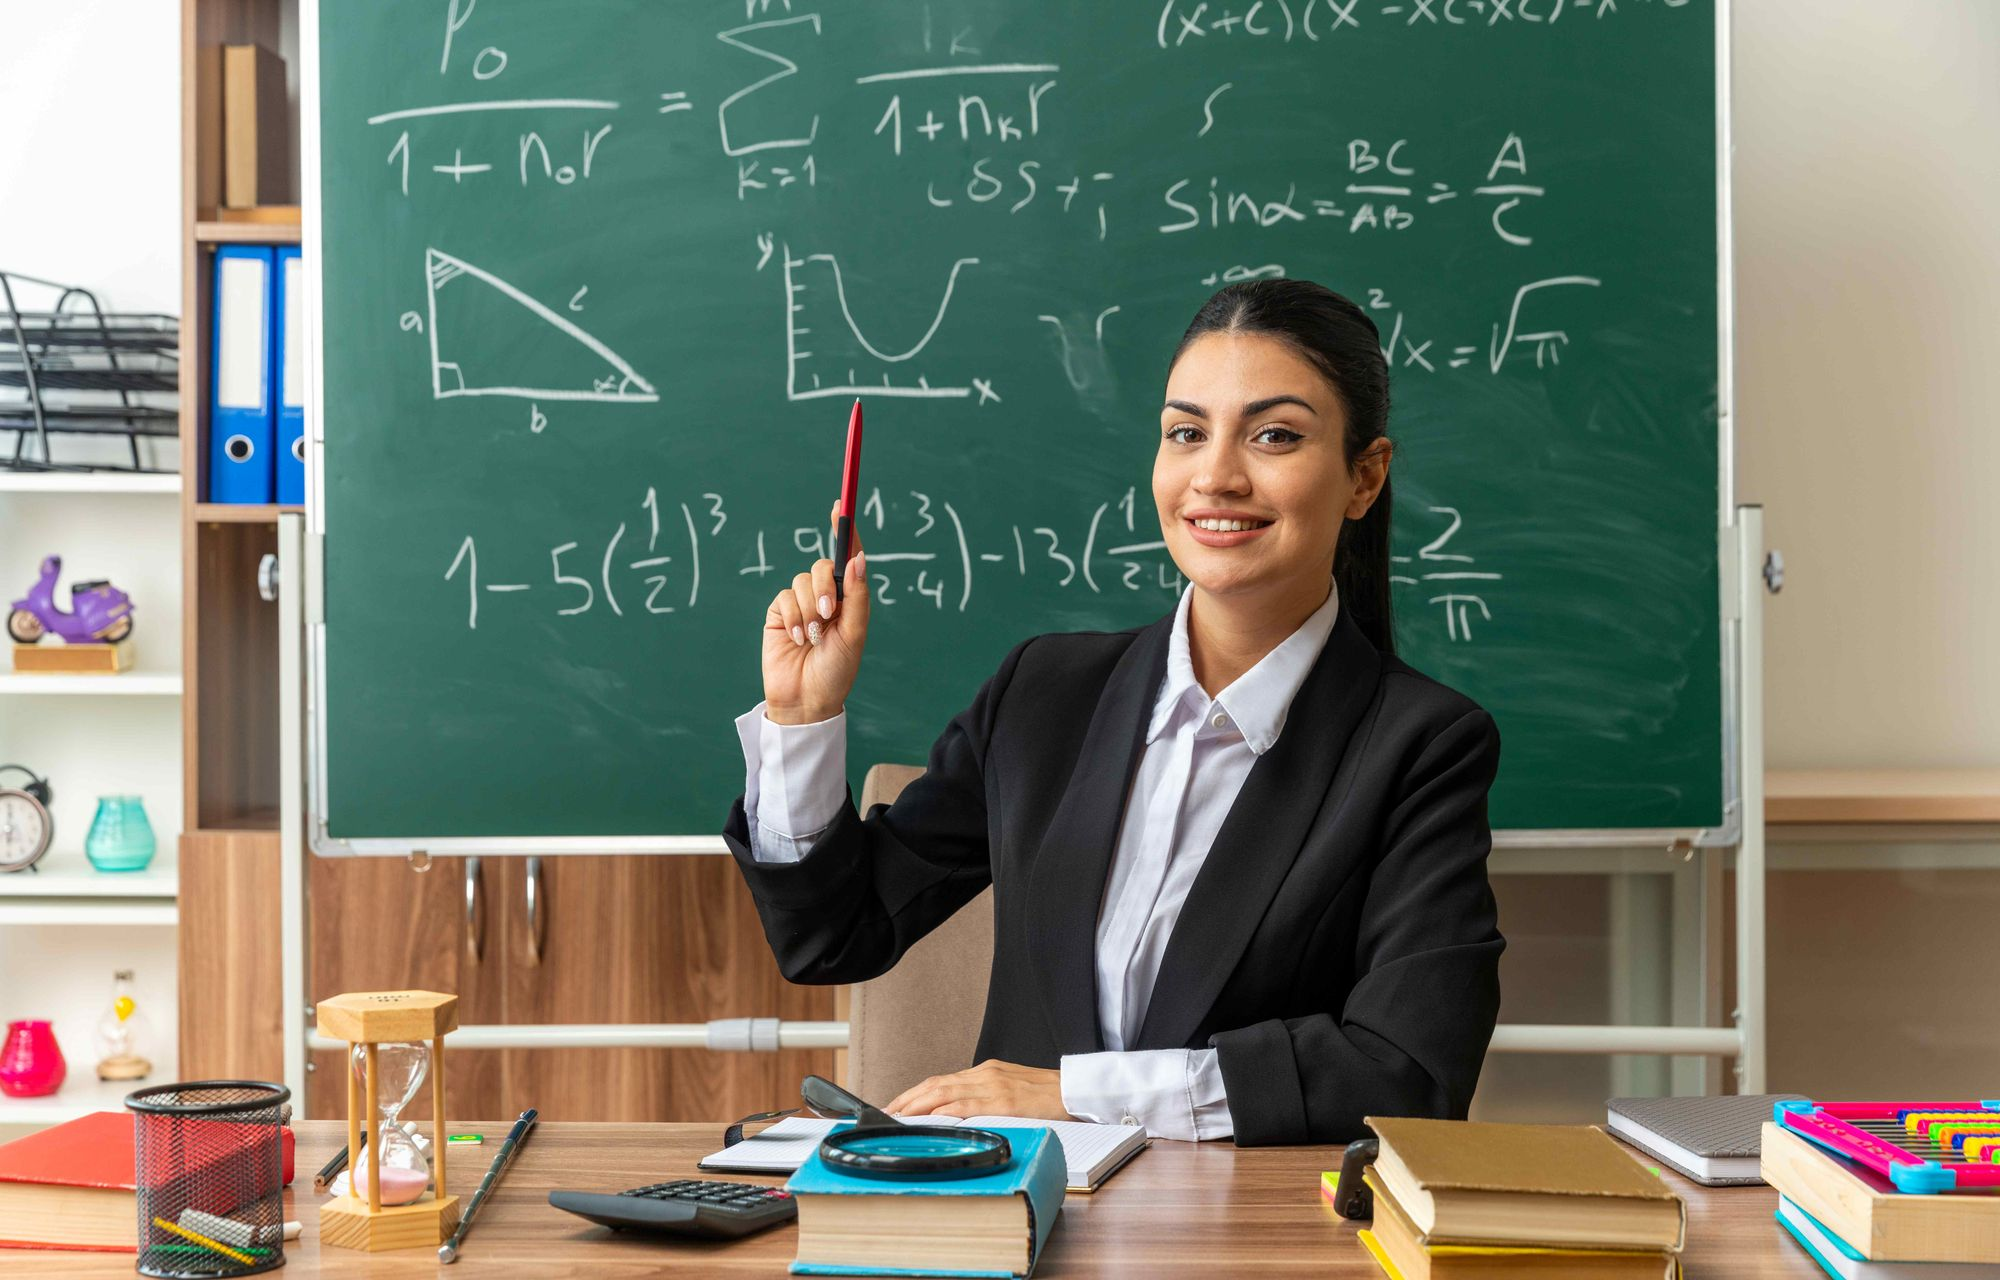 Teachers in India are optimistic about their future careers following the pandemic